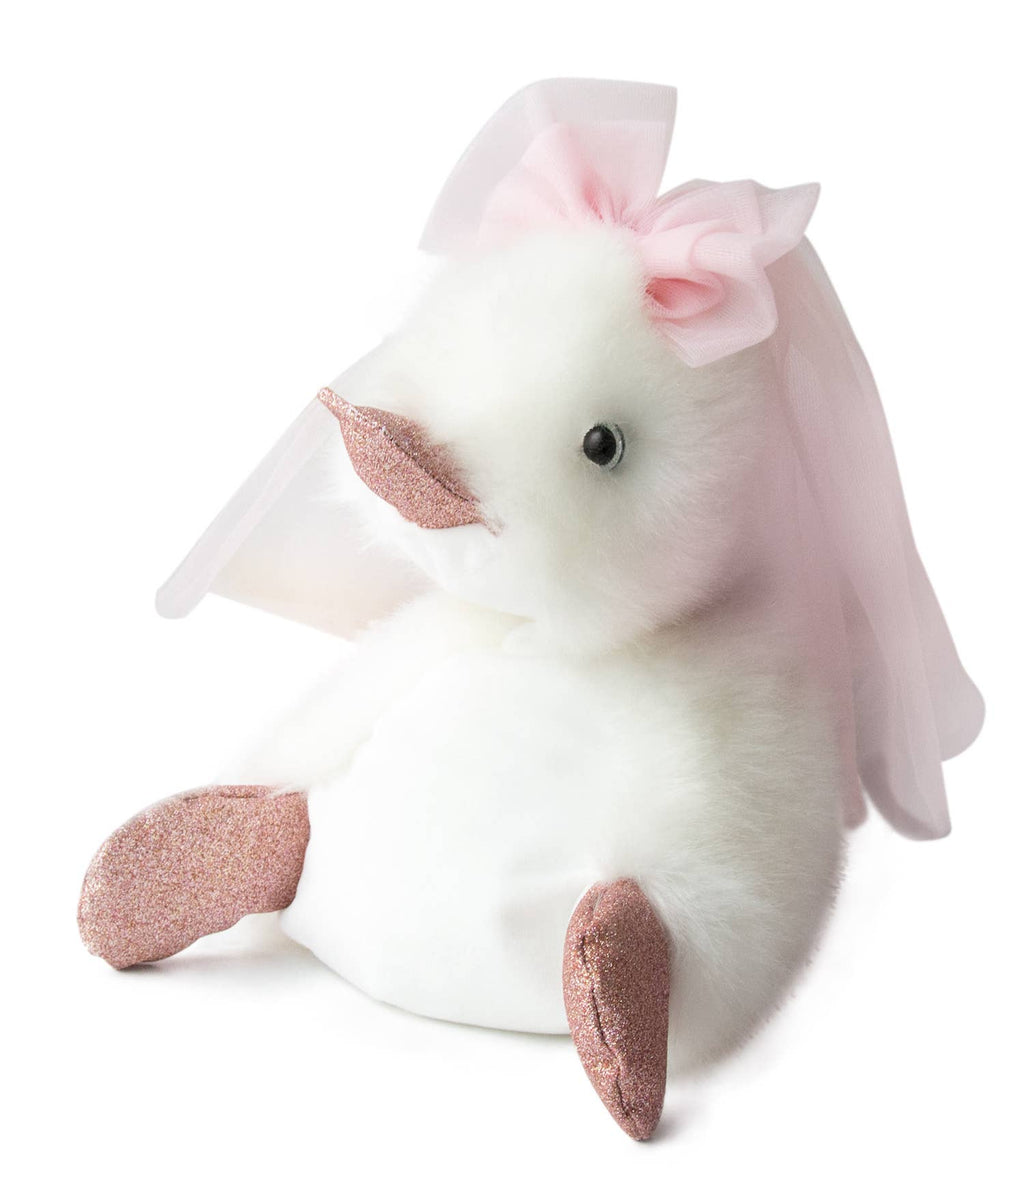 Doudou Et Compagnie - Milady Stuffed Animal Duck - Le Bébé Chic Boutique